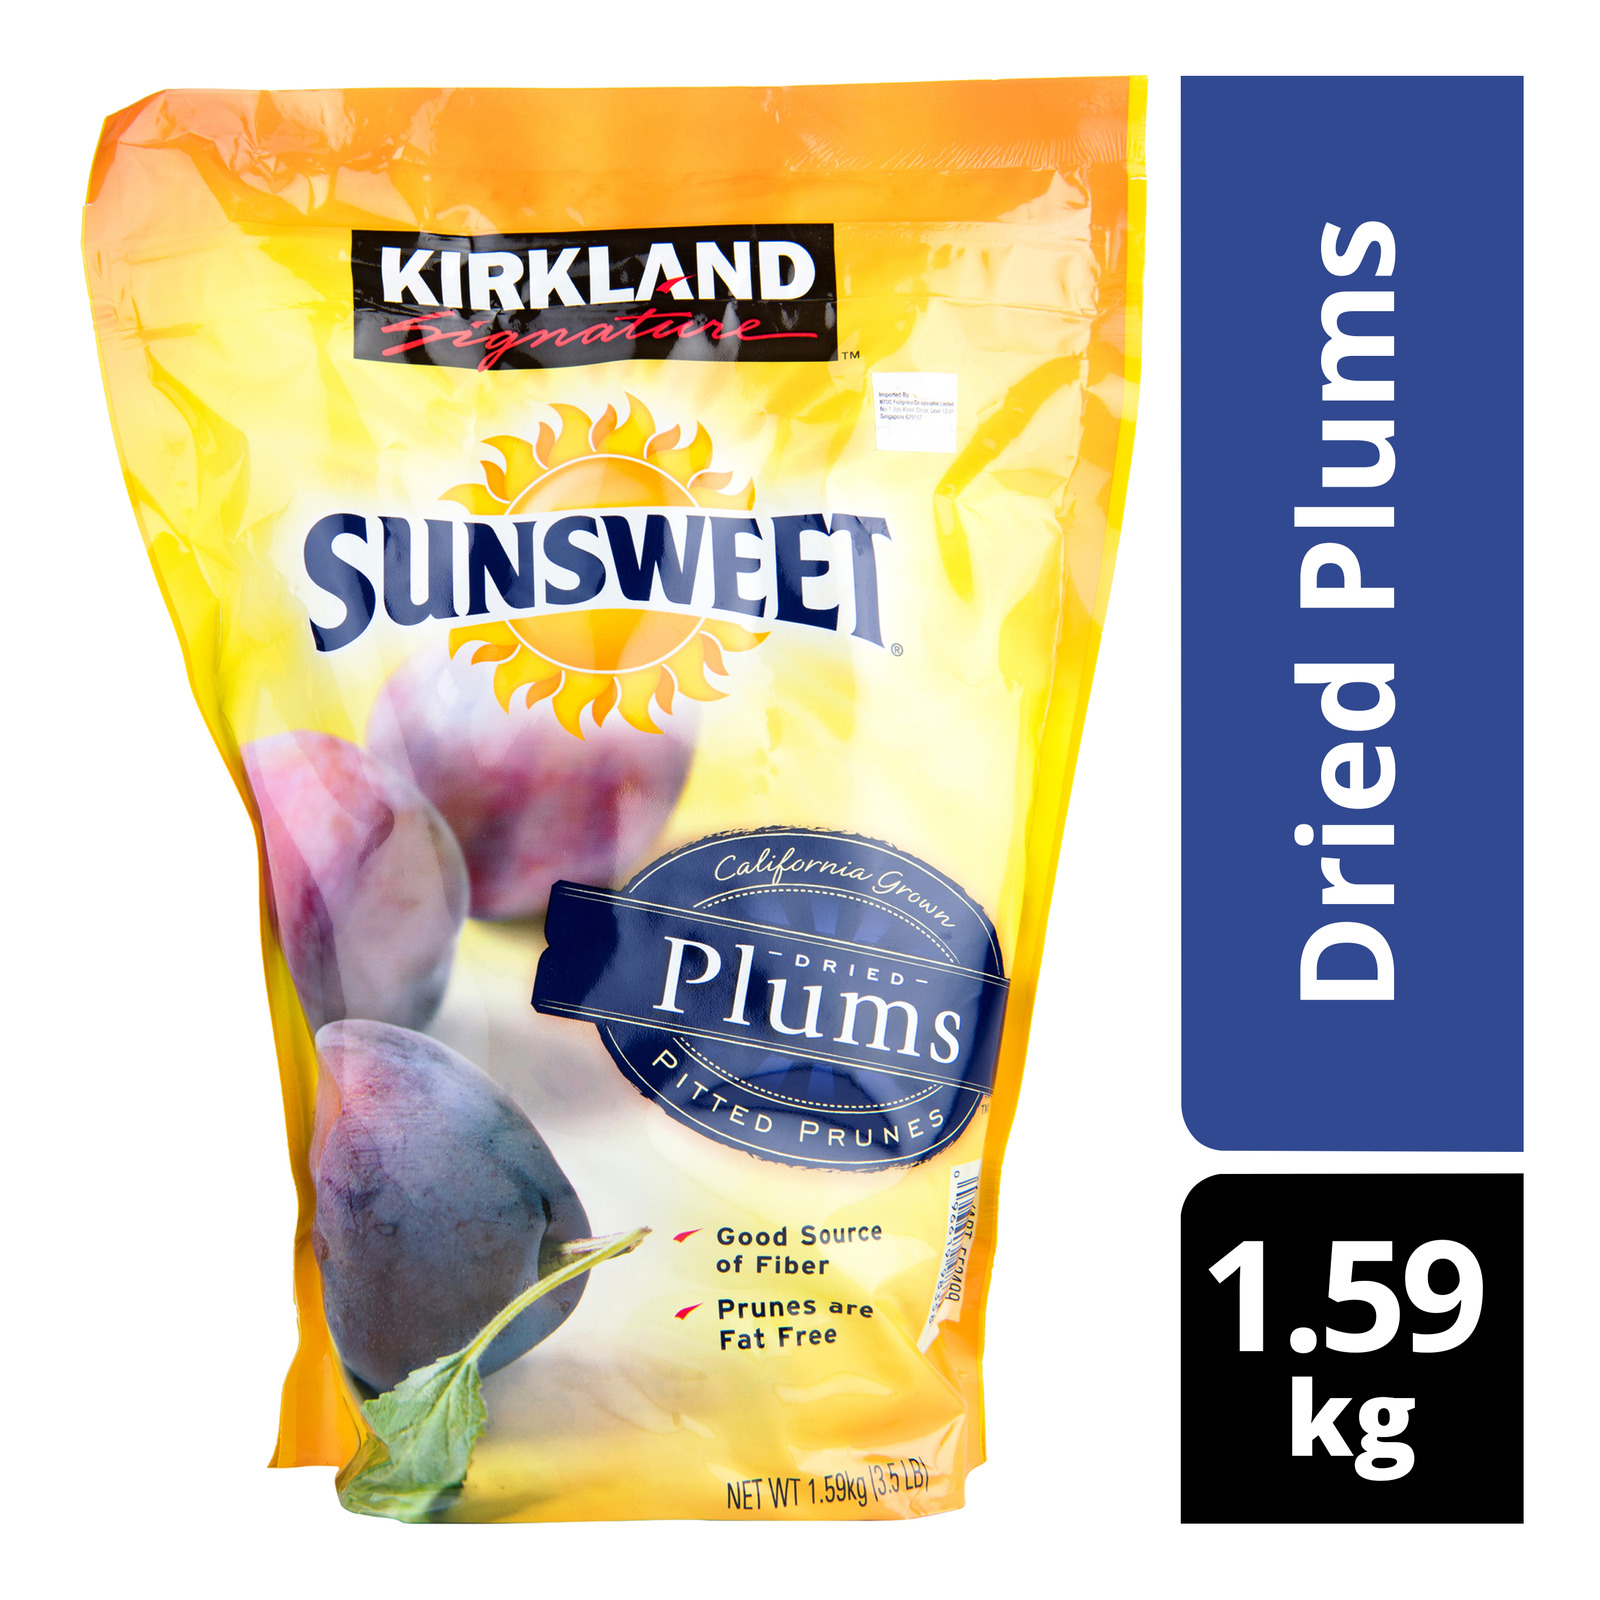 Kirkland Signature Sunsweet Dried Plums